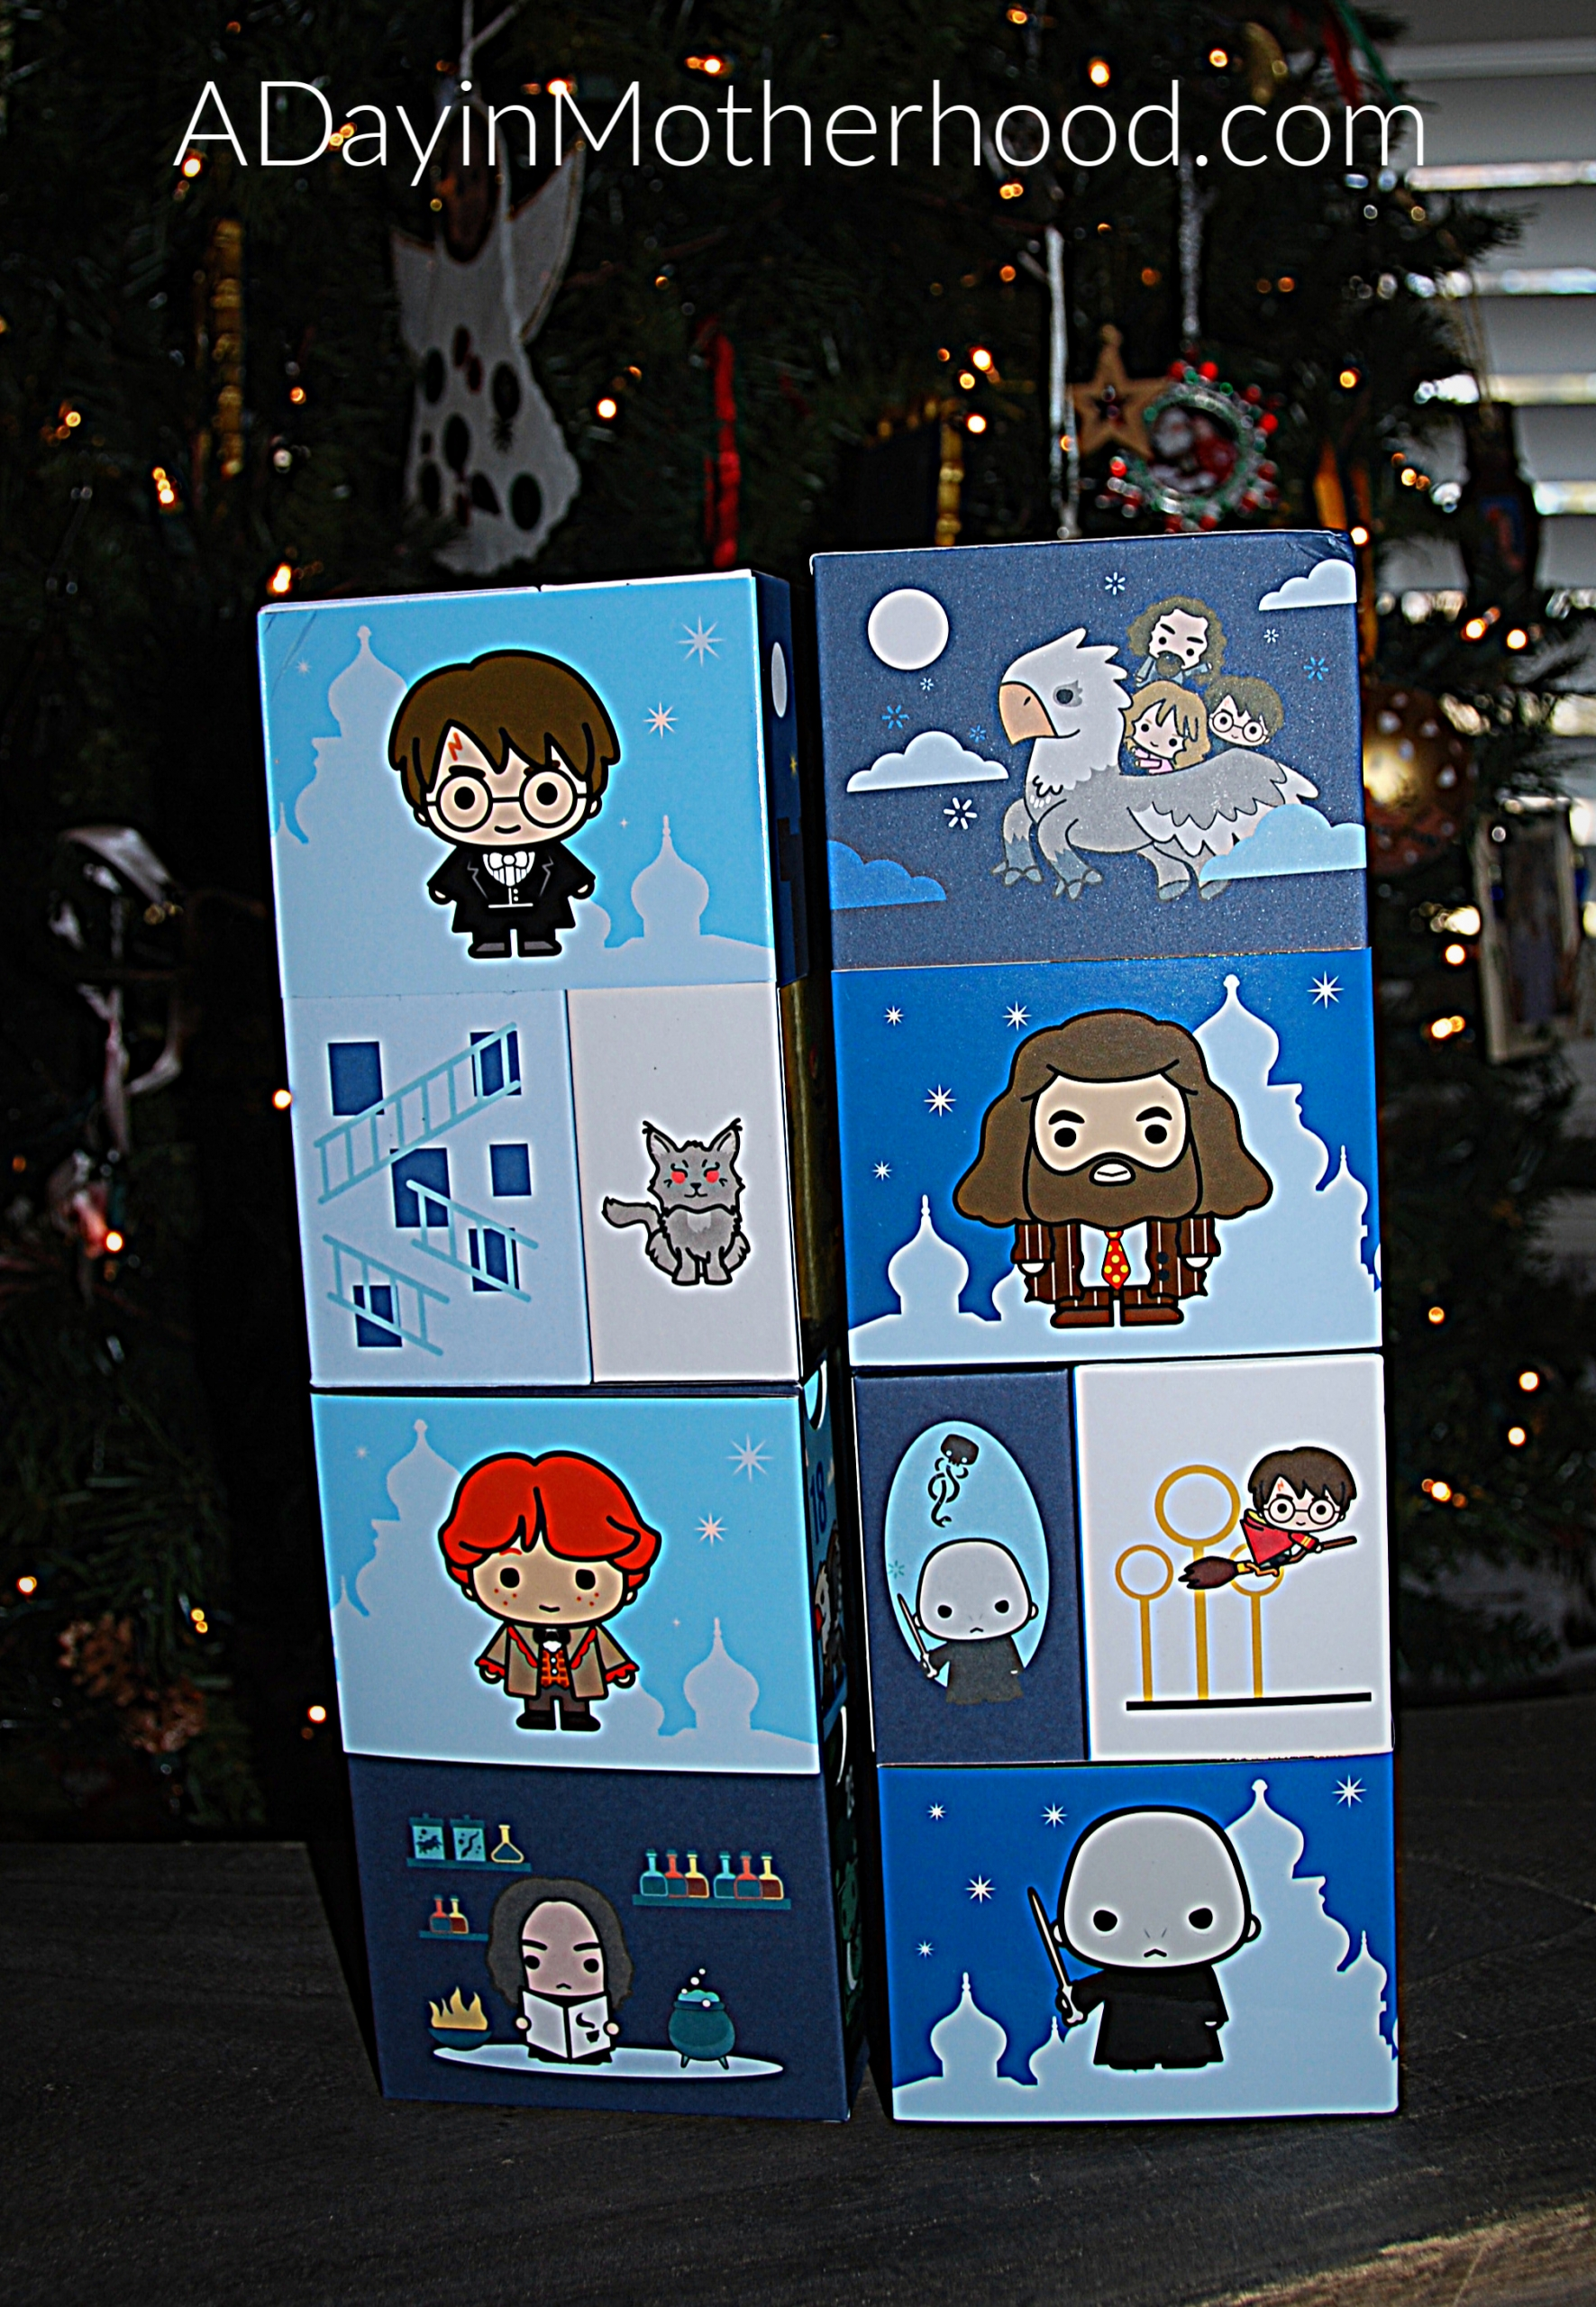 Harry Potter the Infinity Box-photo of front of toy on ADayinMotherhood.com